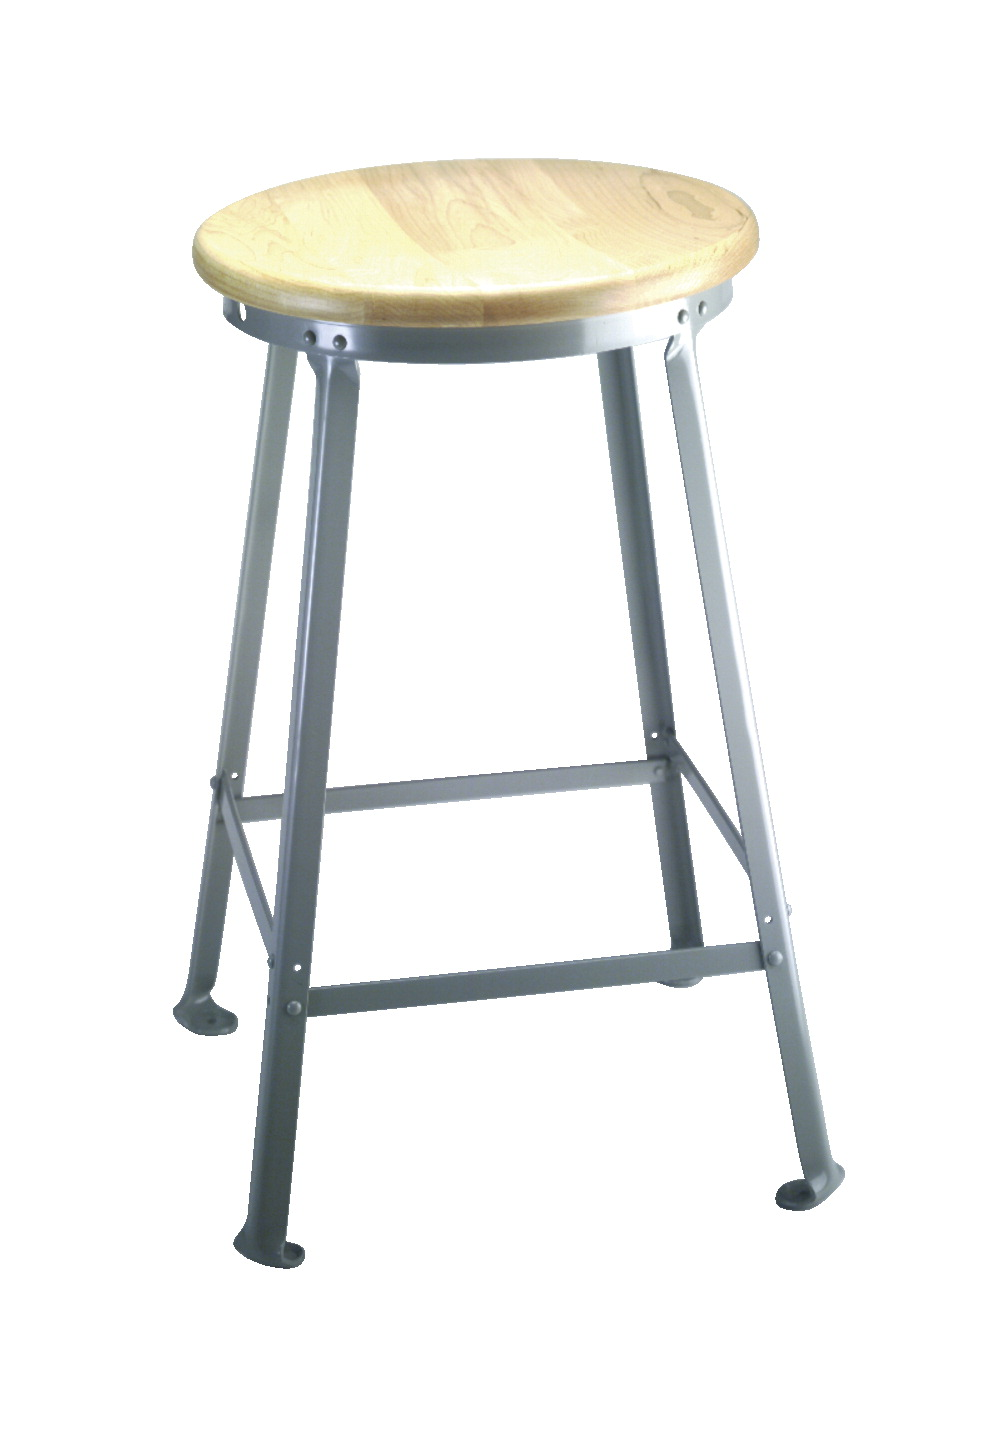 Flexible Montisa Steel Angle Leg Stool With Wood Seat 20 Inch Height Various Options